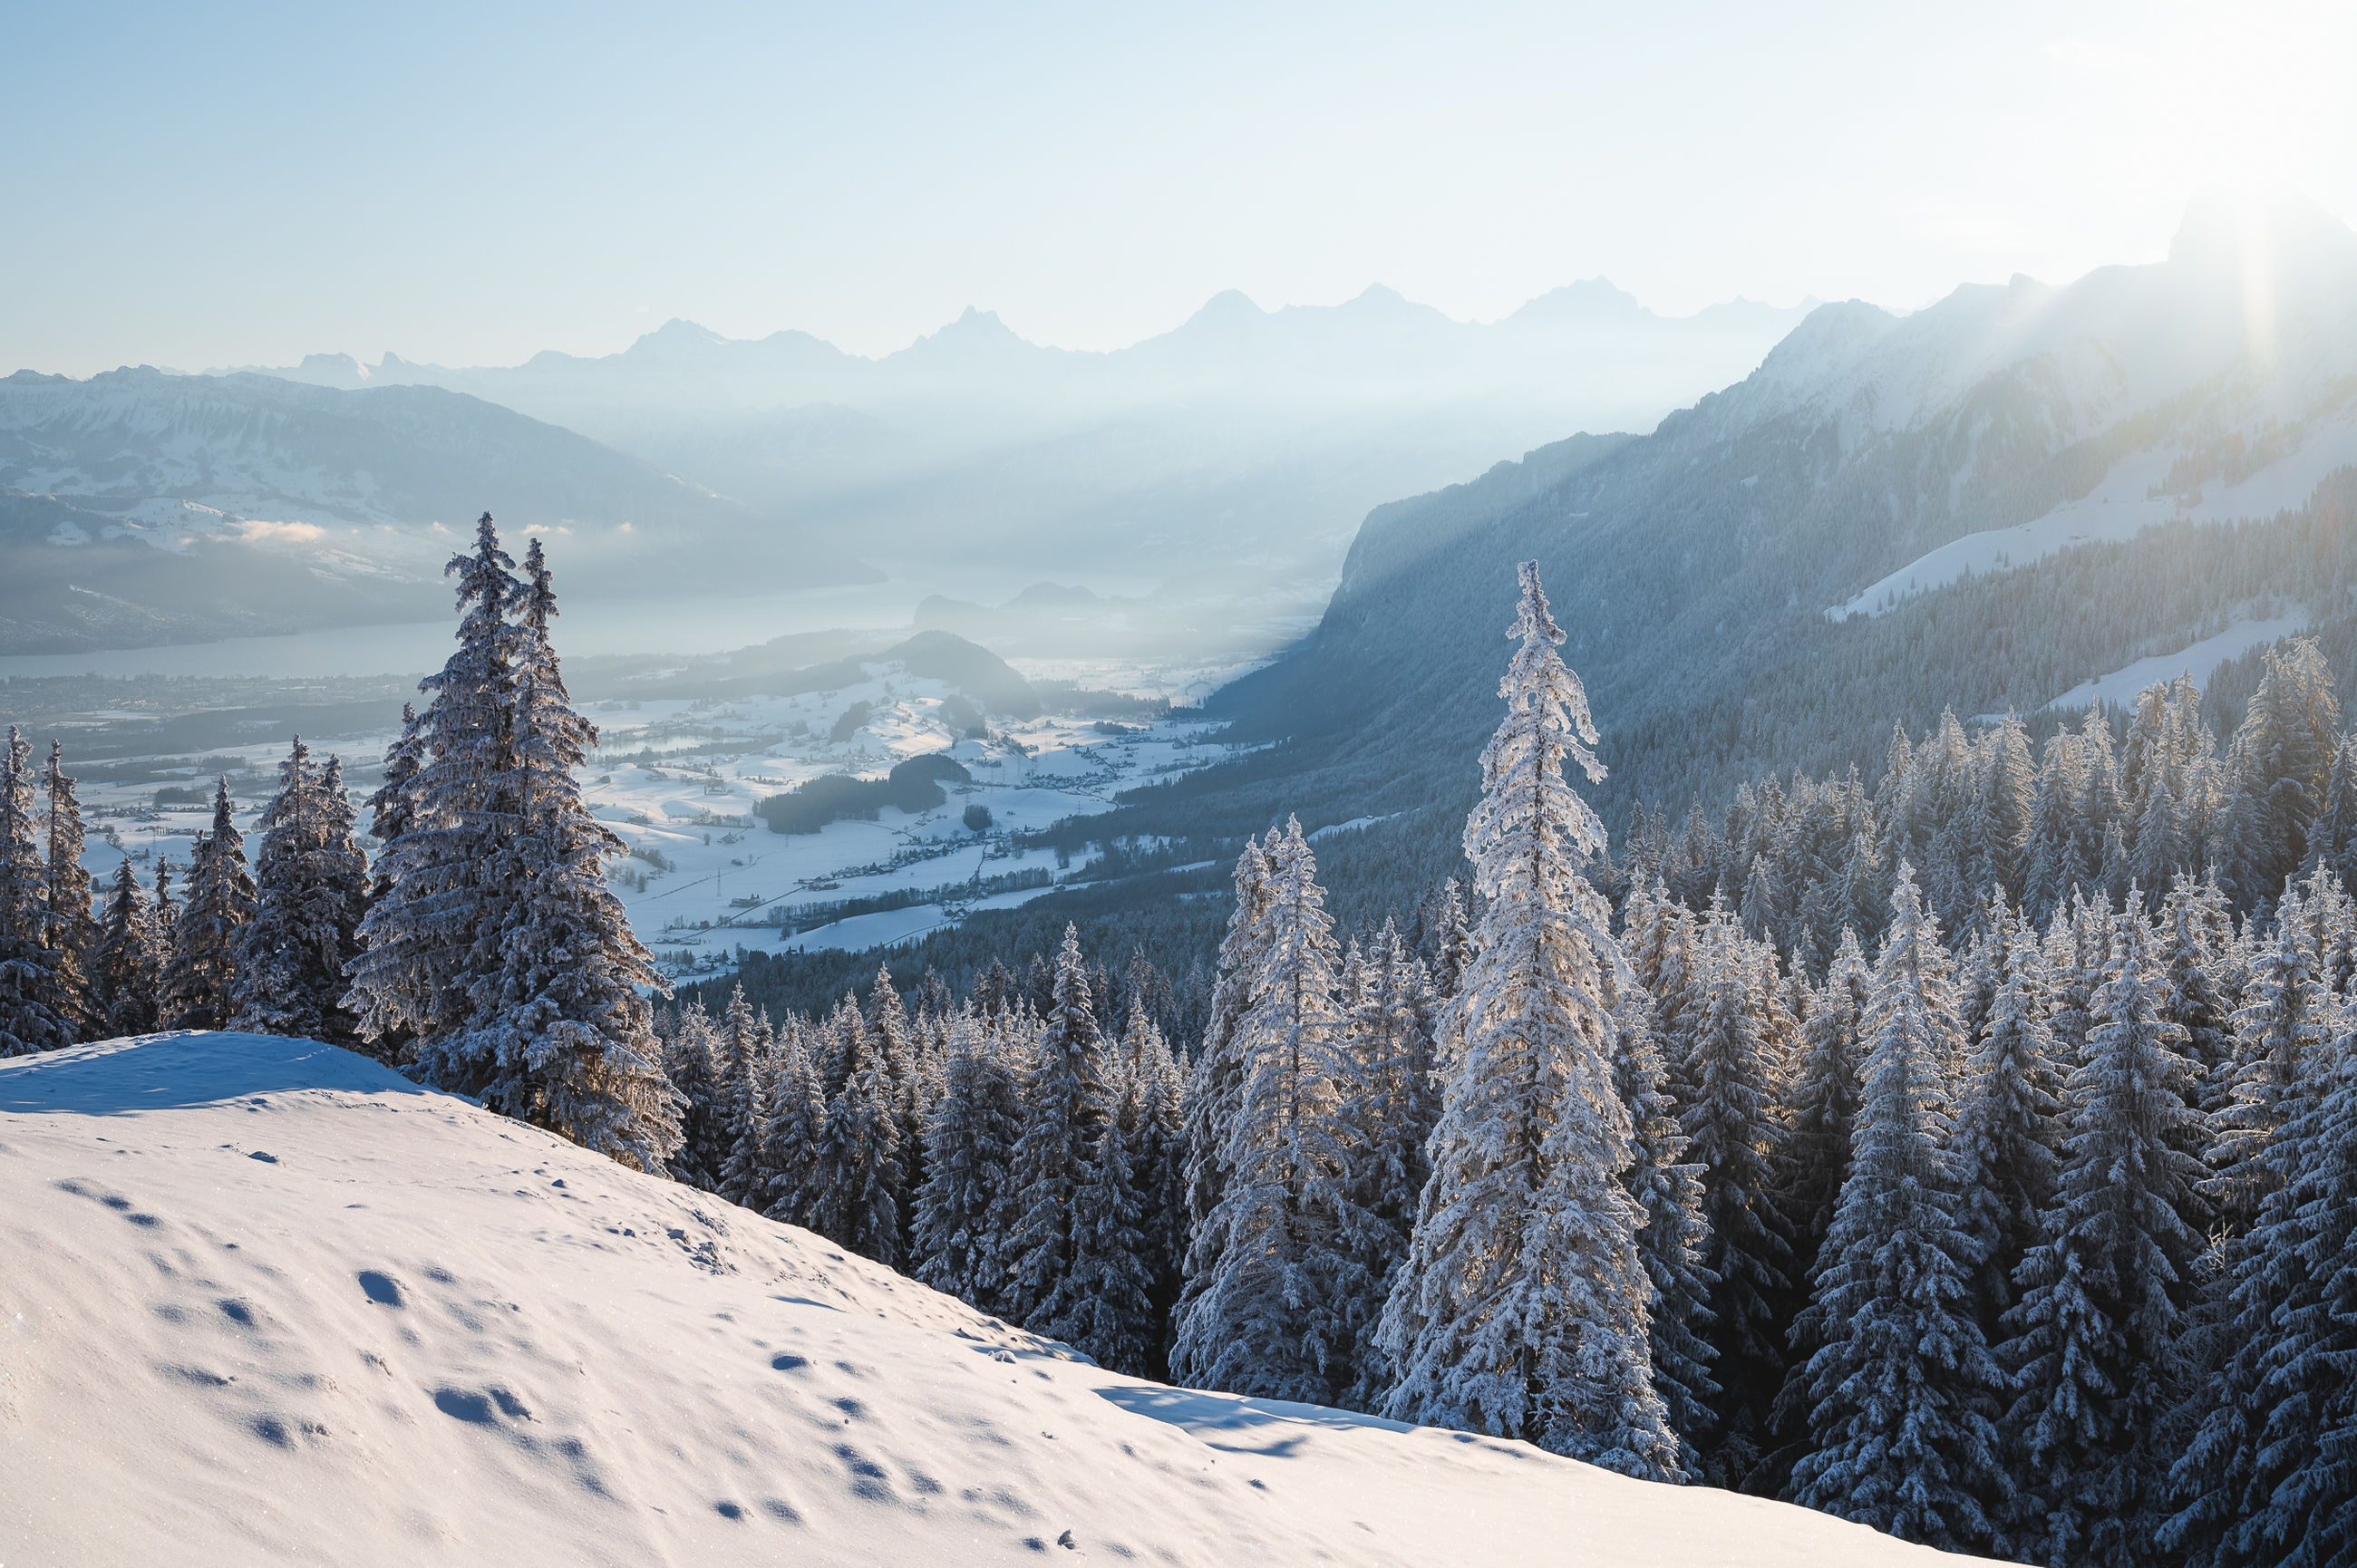 snow, winter, cold temperature, mountain, scenics - nature, tree, environment, landscape, mountain range, beauty in nature, forest, plant, pine tree, nature, coniferous tree, sky, land, pinaceae, pine woodland, tranquil scene, tranquility, ridge, non-urban scene, snowcapped mountain, woodland, fog, no people, travel destinations, frozen, travel, sunlight, outdoors, idyllic, day, blue, mountain peak, piste, wilderness, sun, ice, white, evergreen tree, remote, tourism, rural scene, cloud, morning